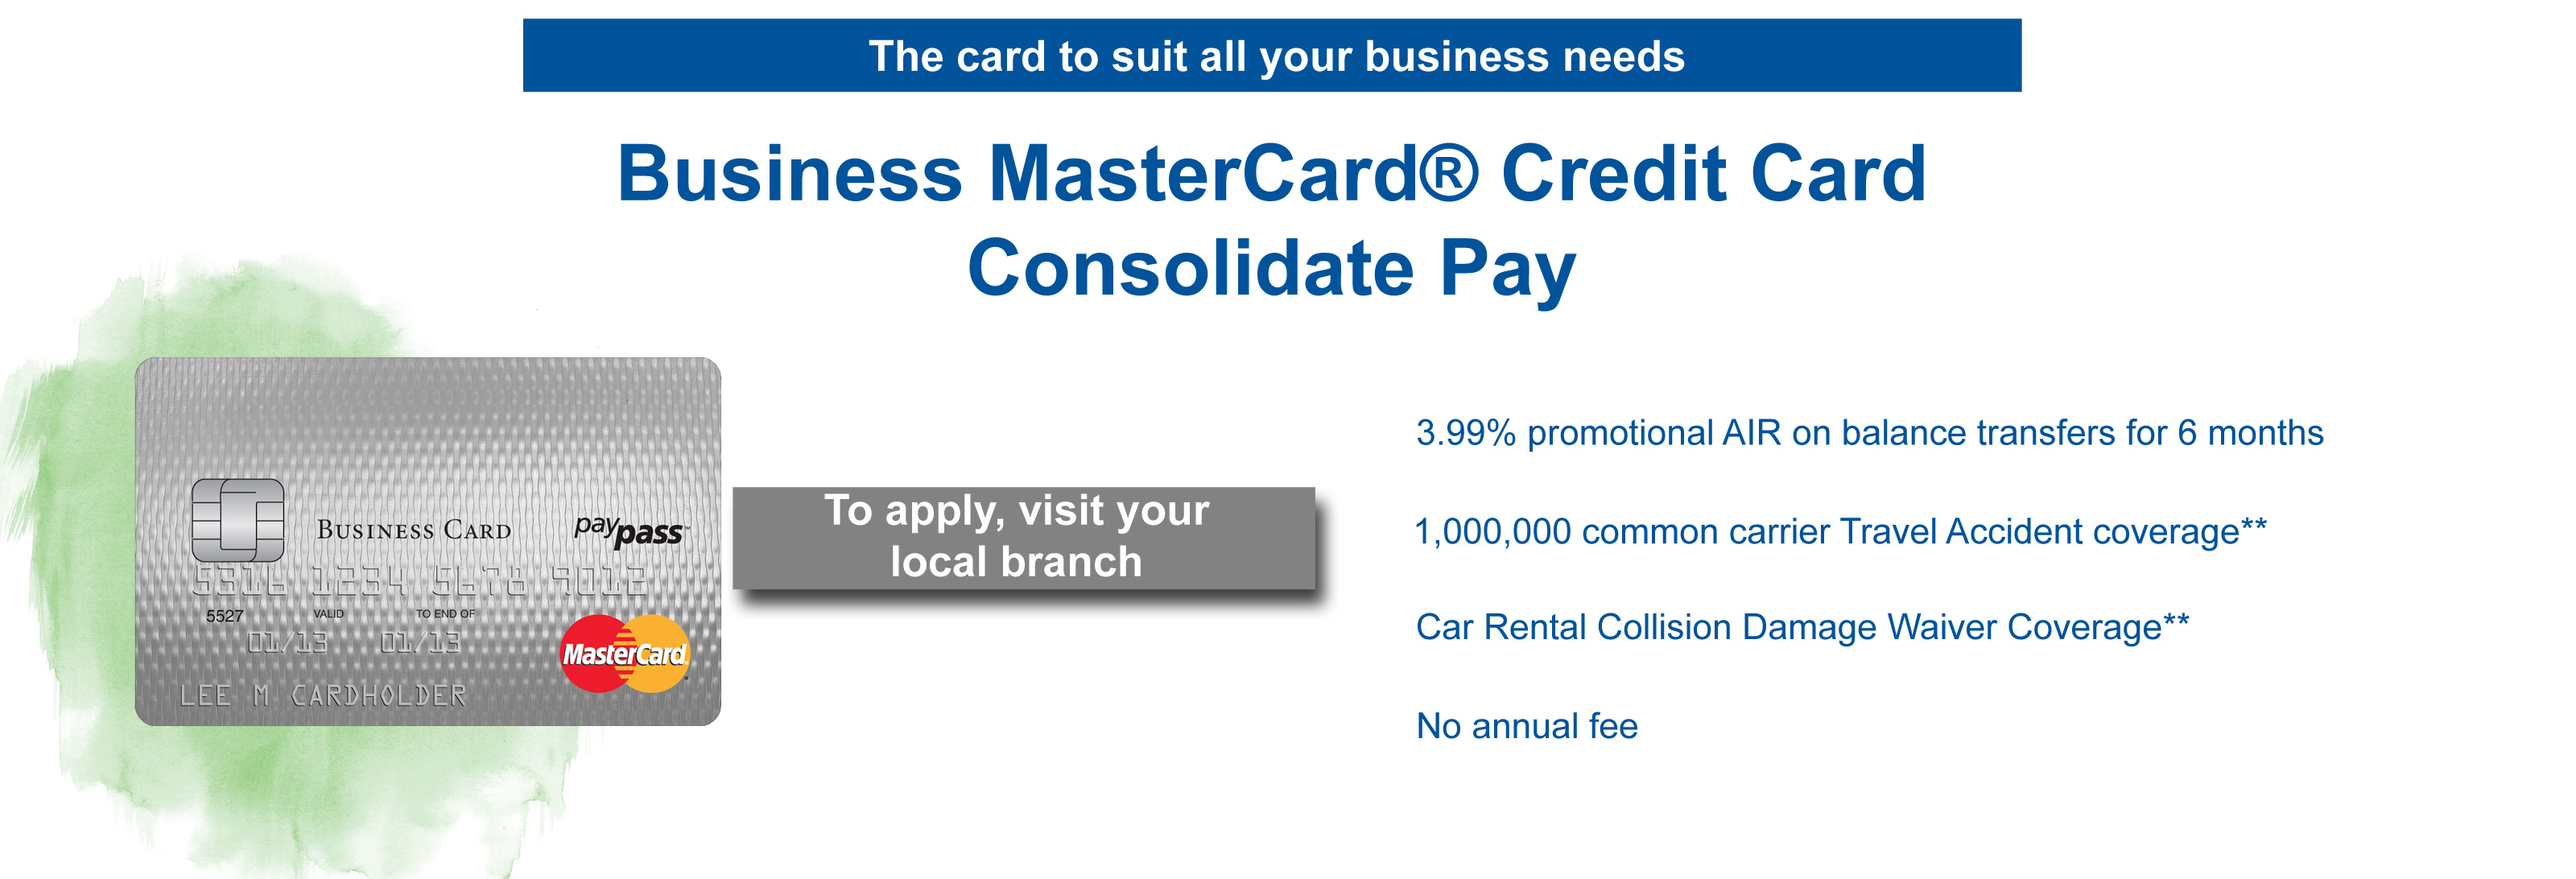 No annual fee business credit cards choice image free business cards jetblue business credit card choice image free business cards business mastercard credit card choice image free magicingreecefo Images